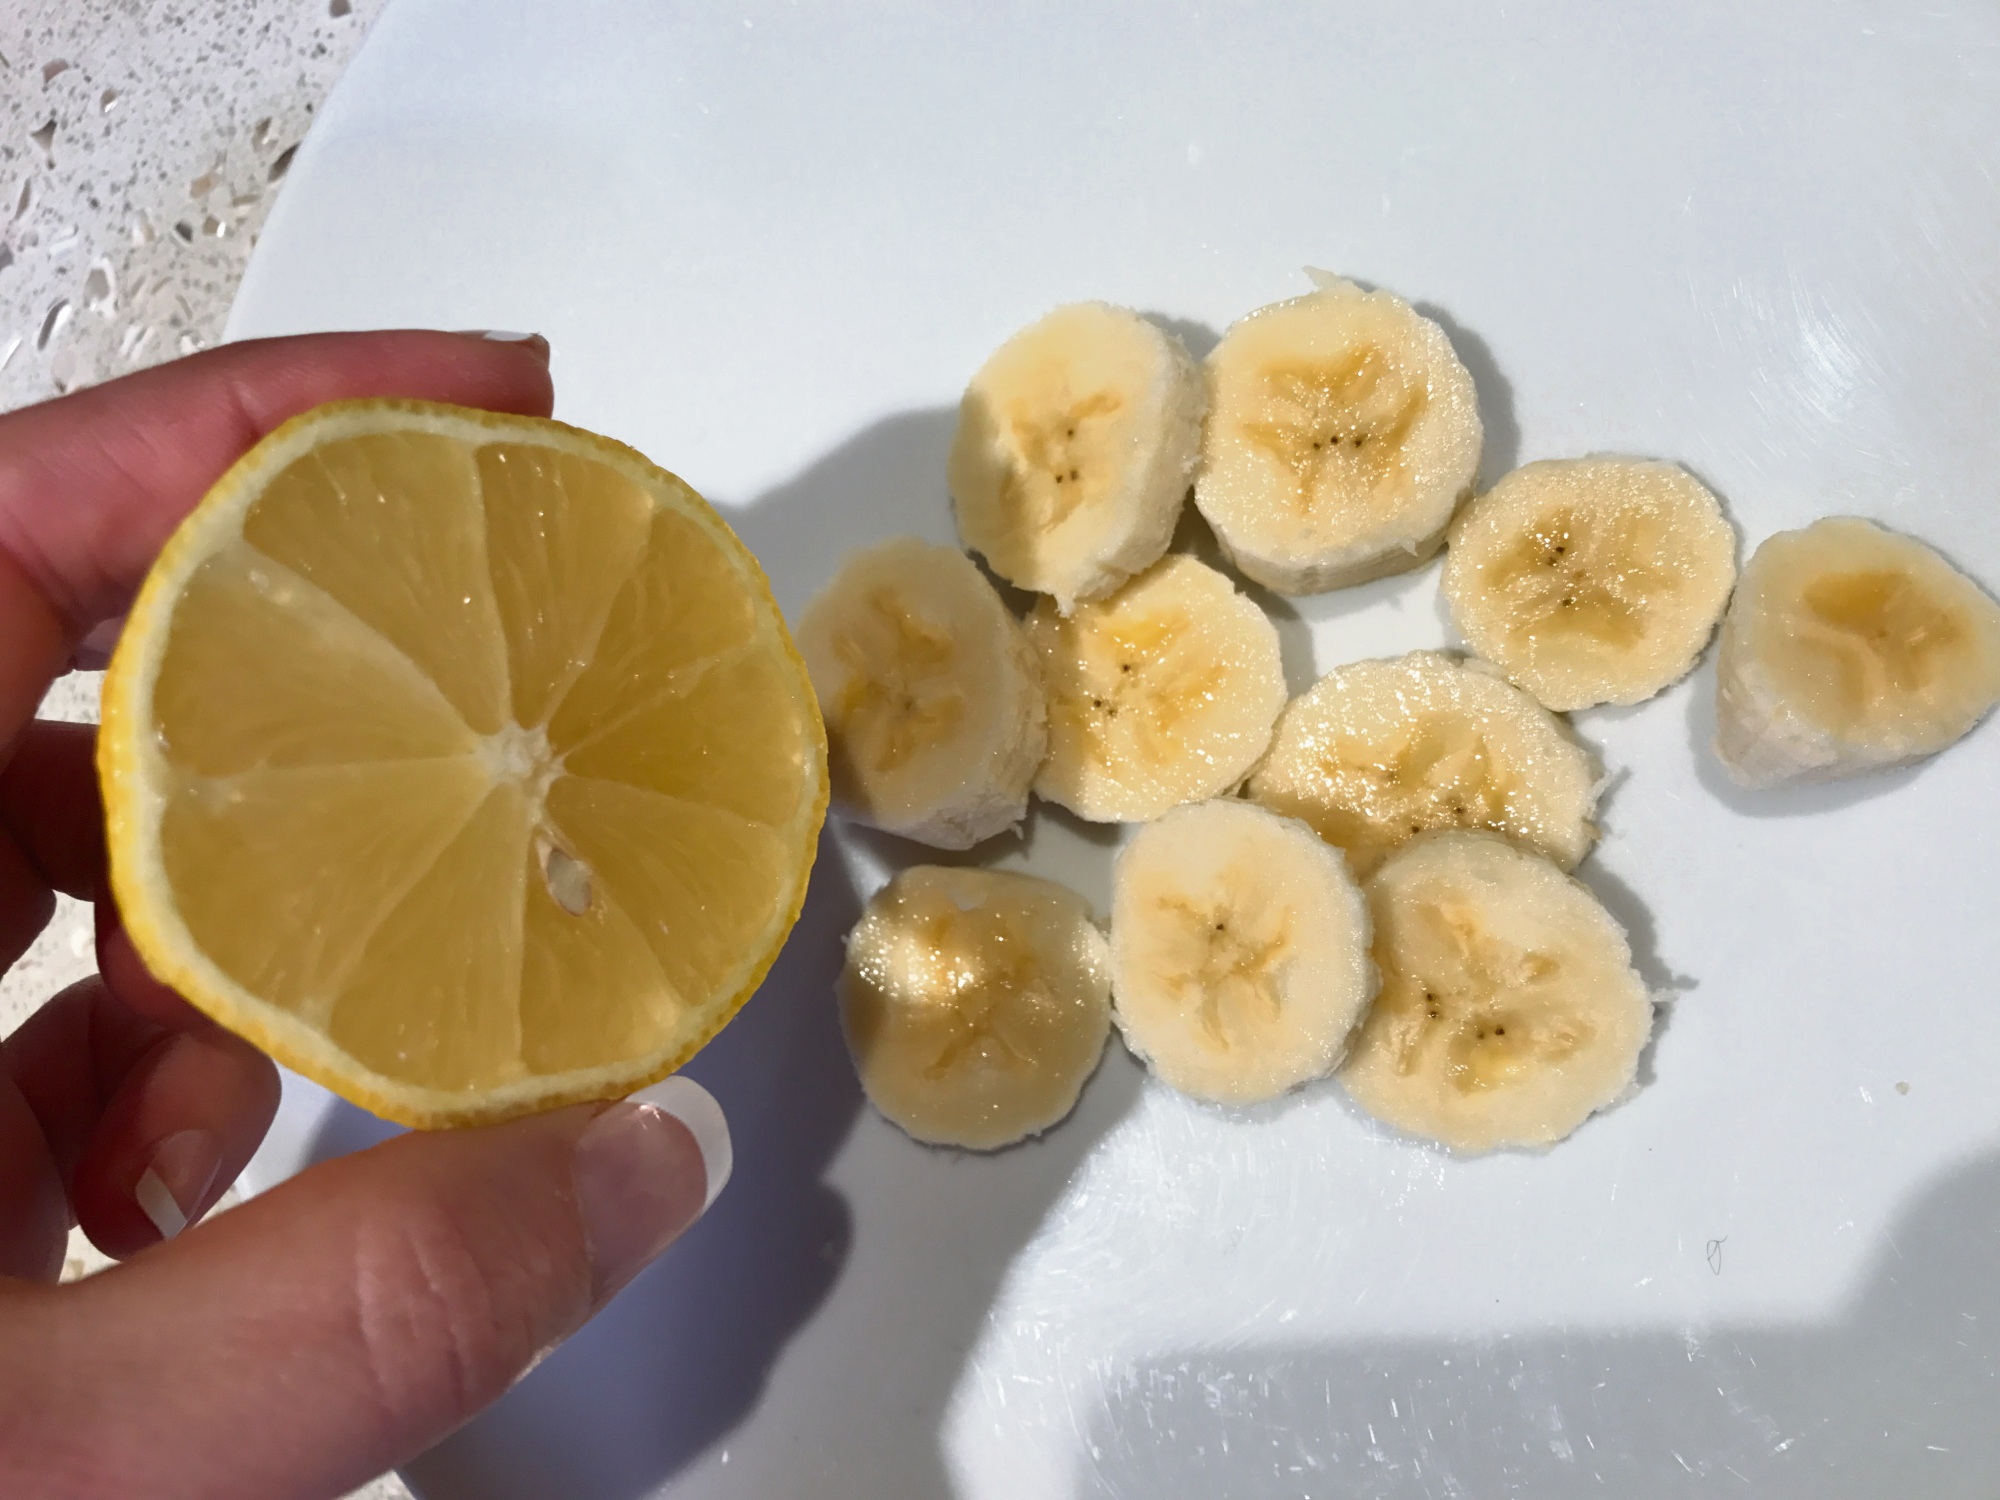 Life hacks: from cleaner food preserver, lemons have many uses